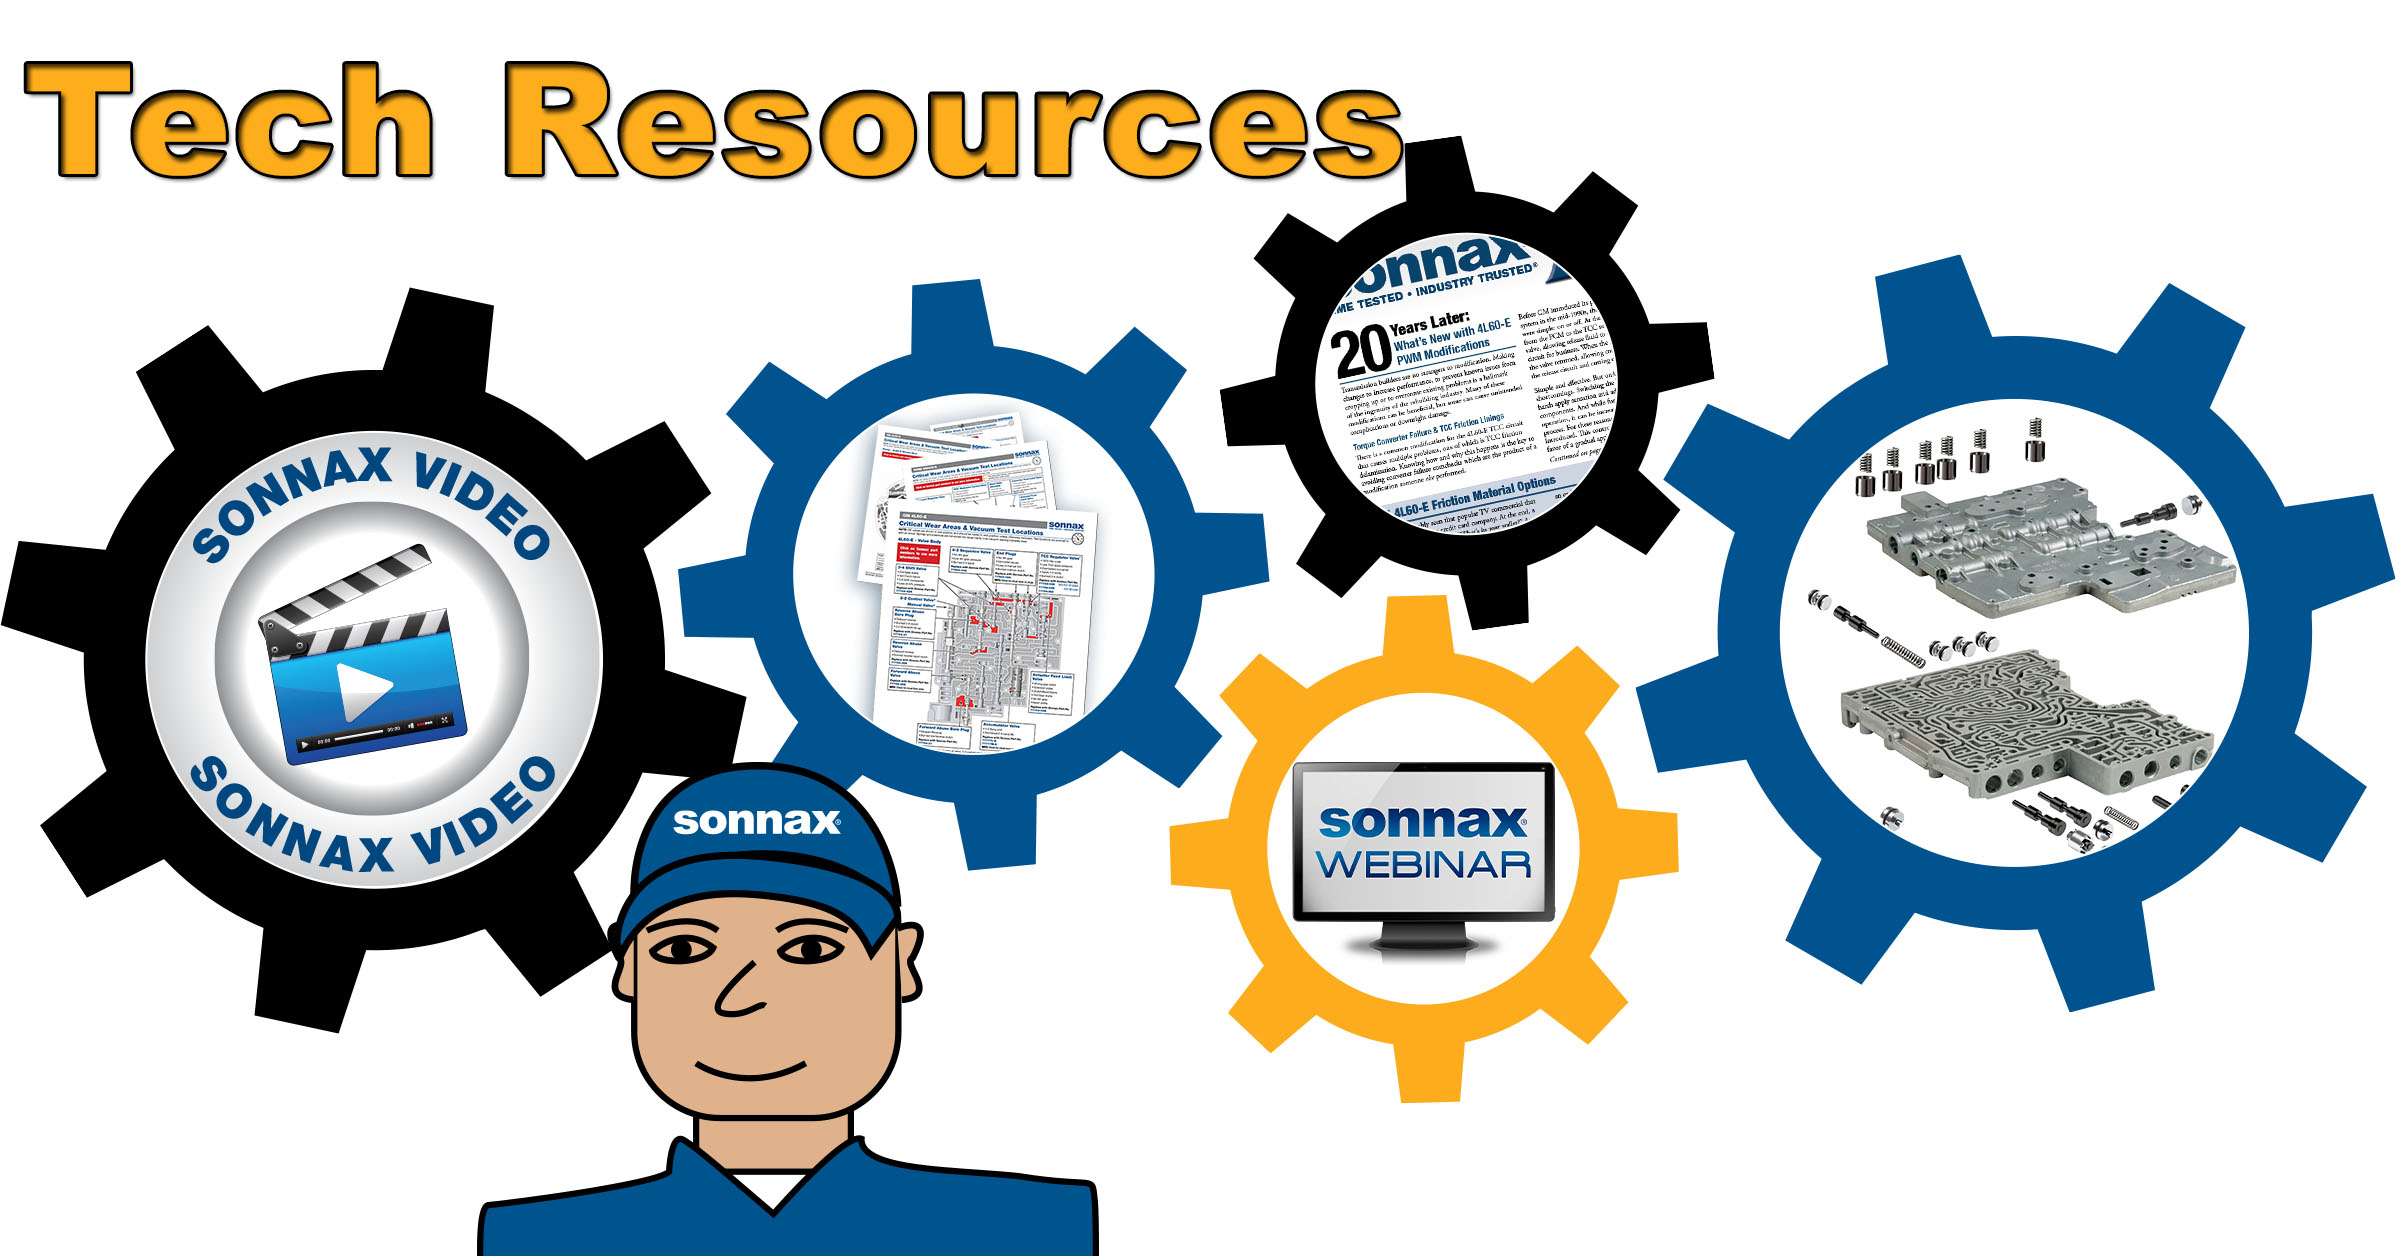 Catch Up on the Latest Tech Resources from Sonnax